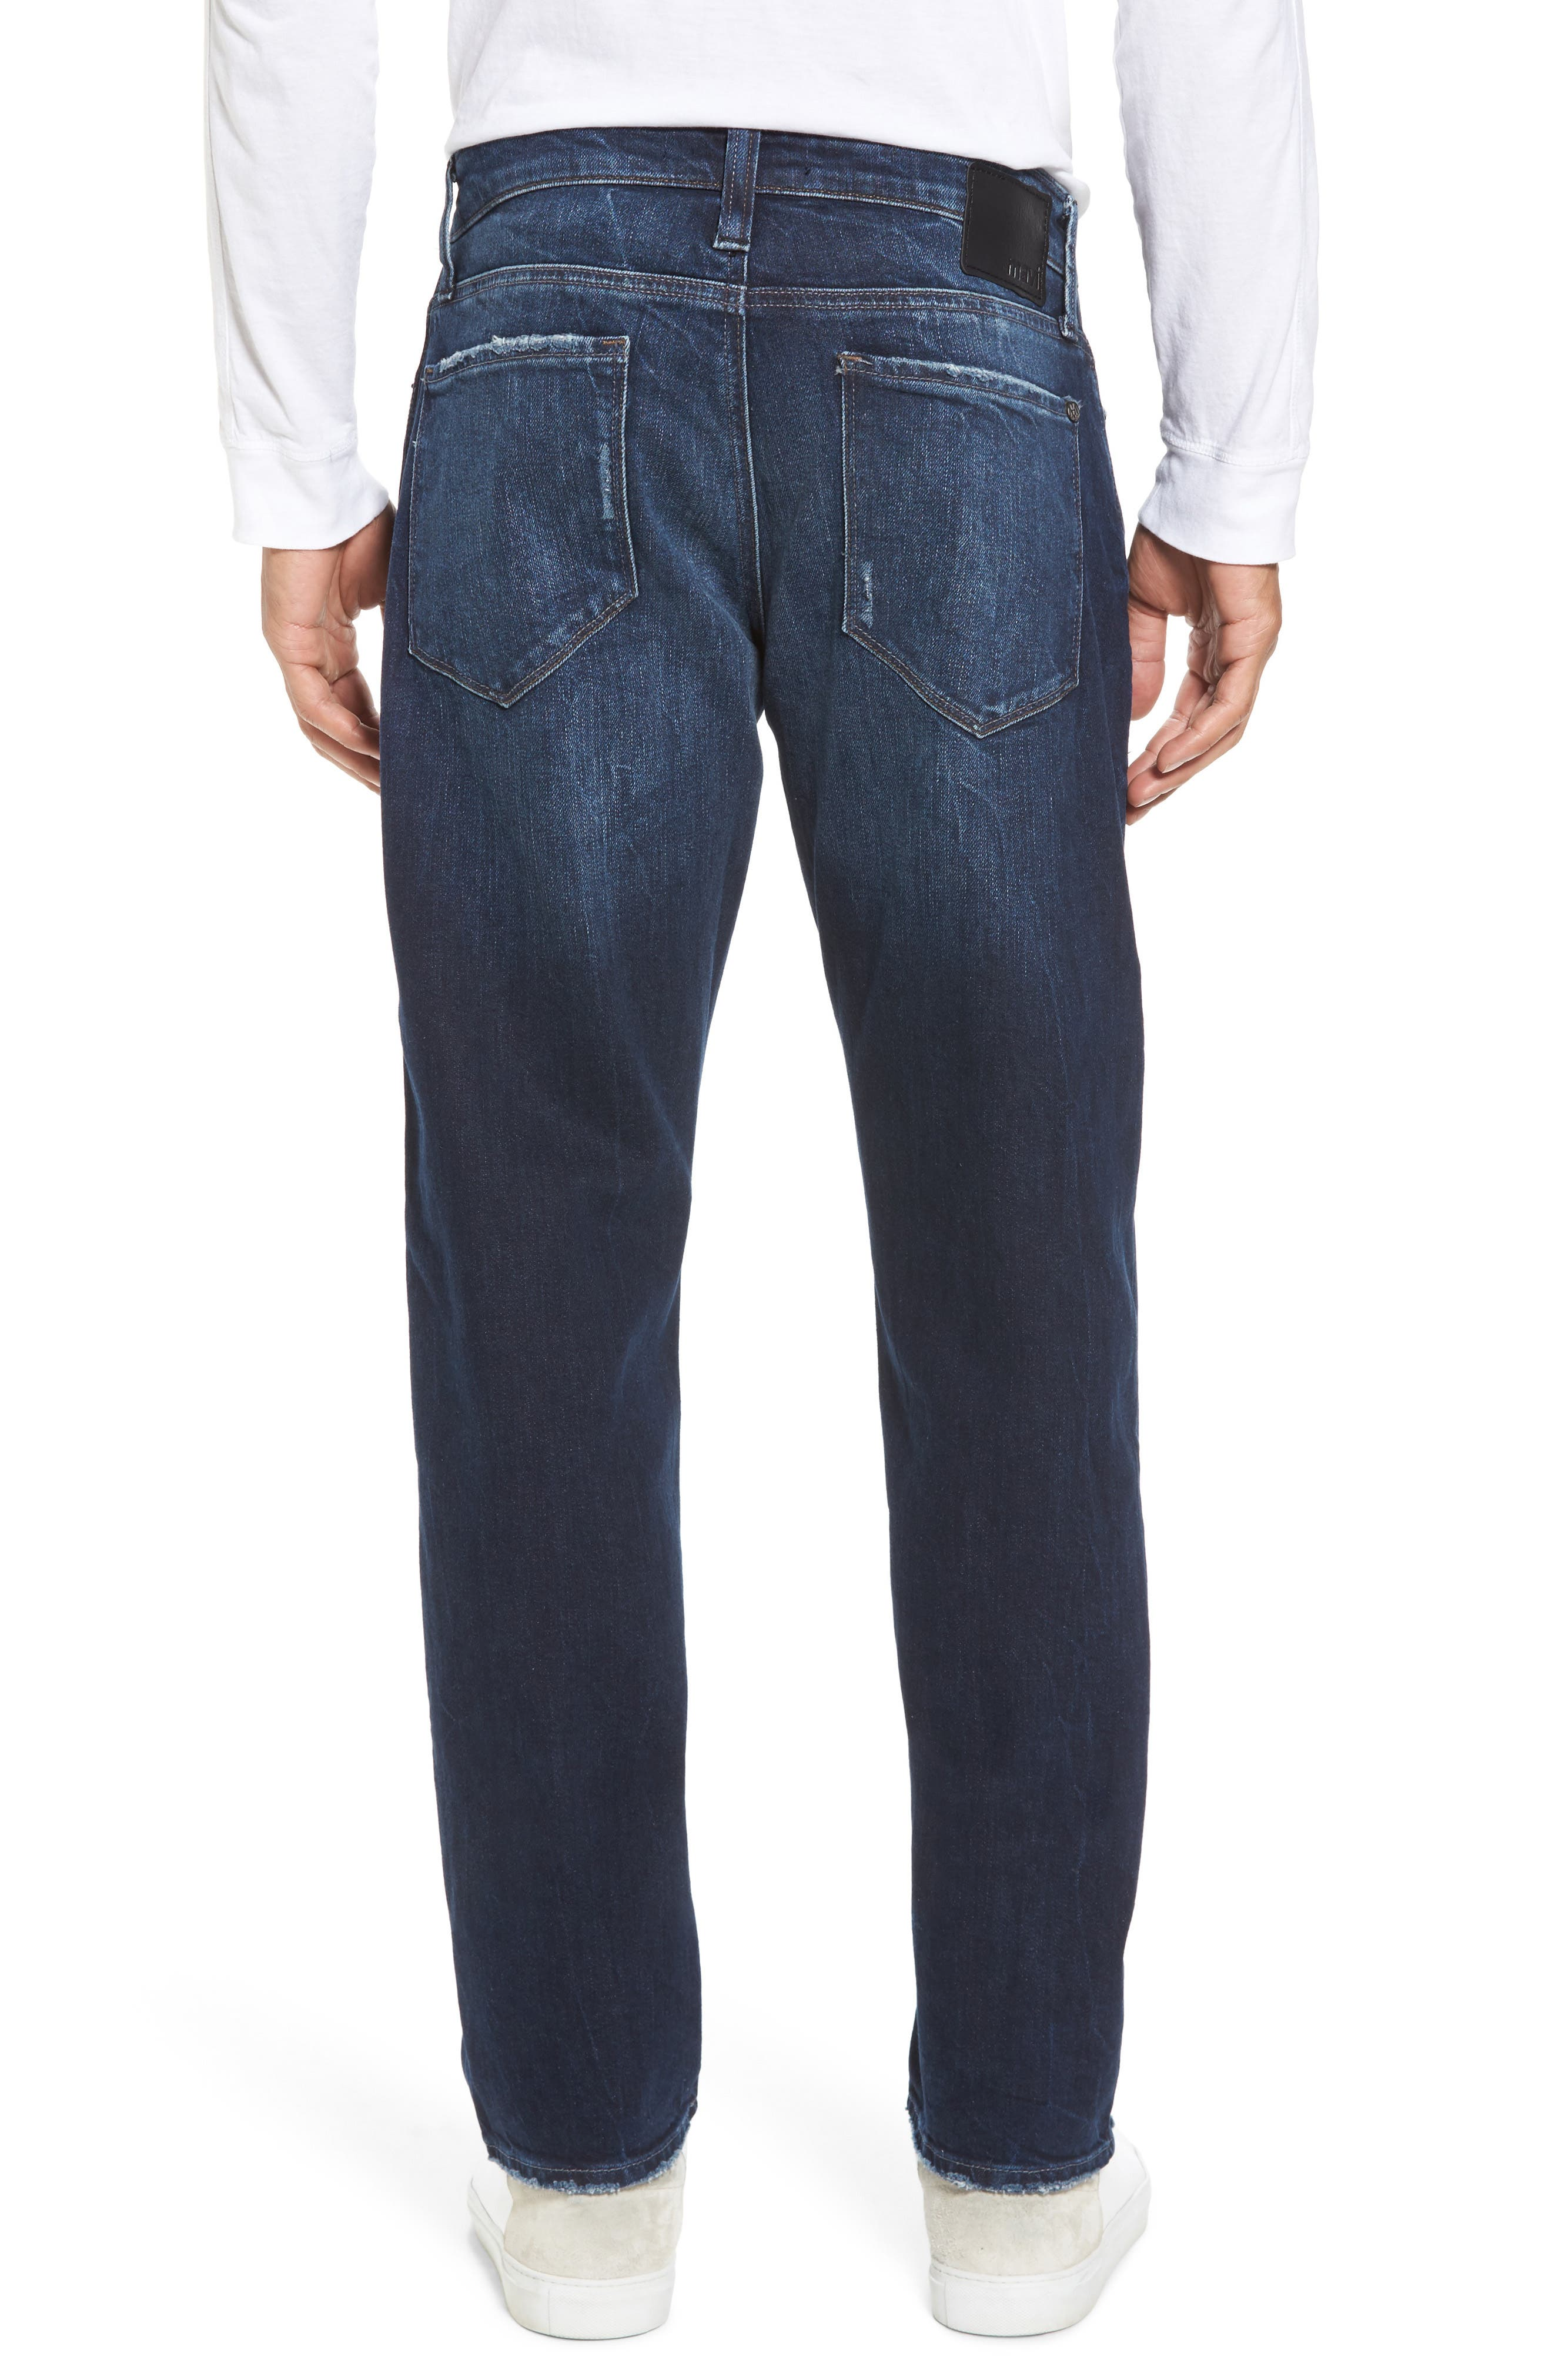 Marcus Slim Straight Leg Jeans,                             Alternate thumbnail 2, color,                             401